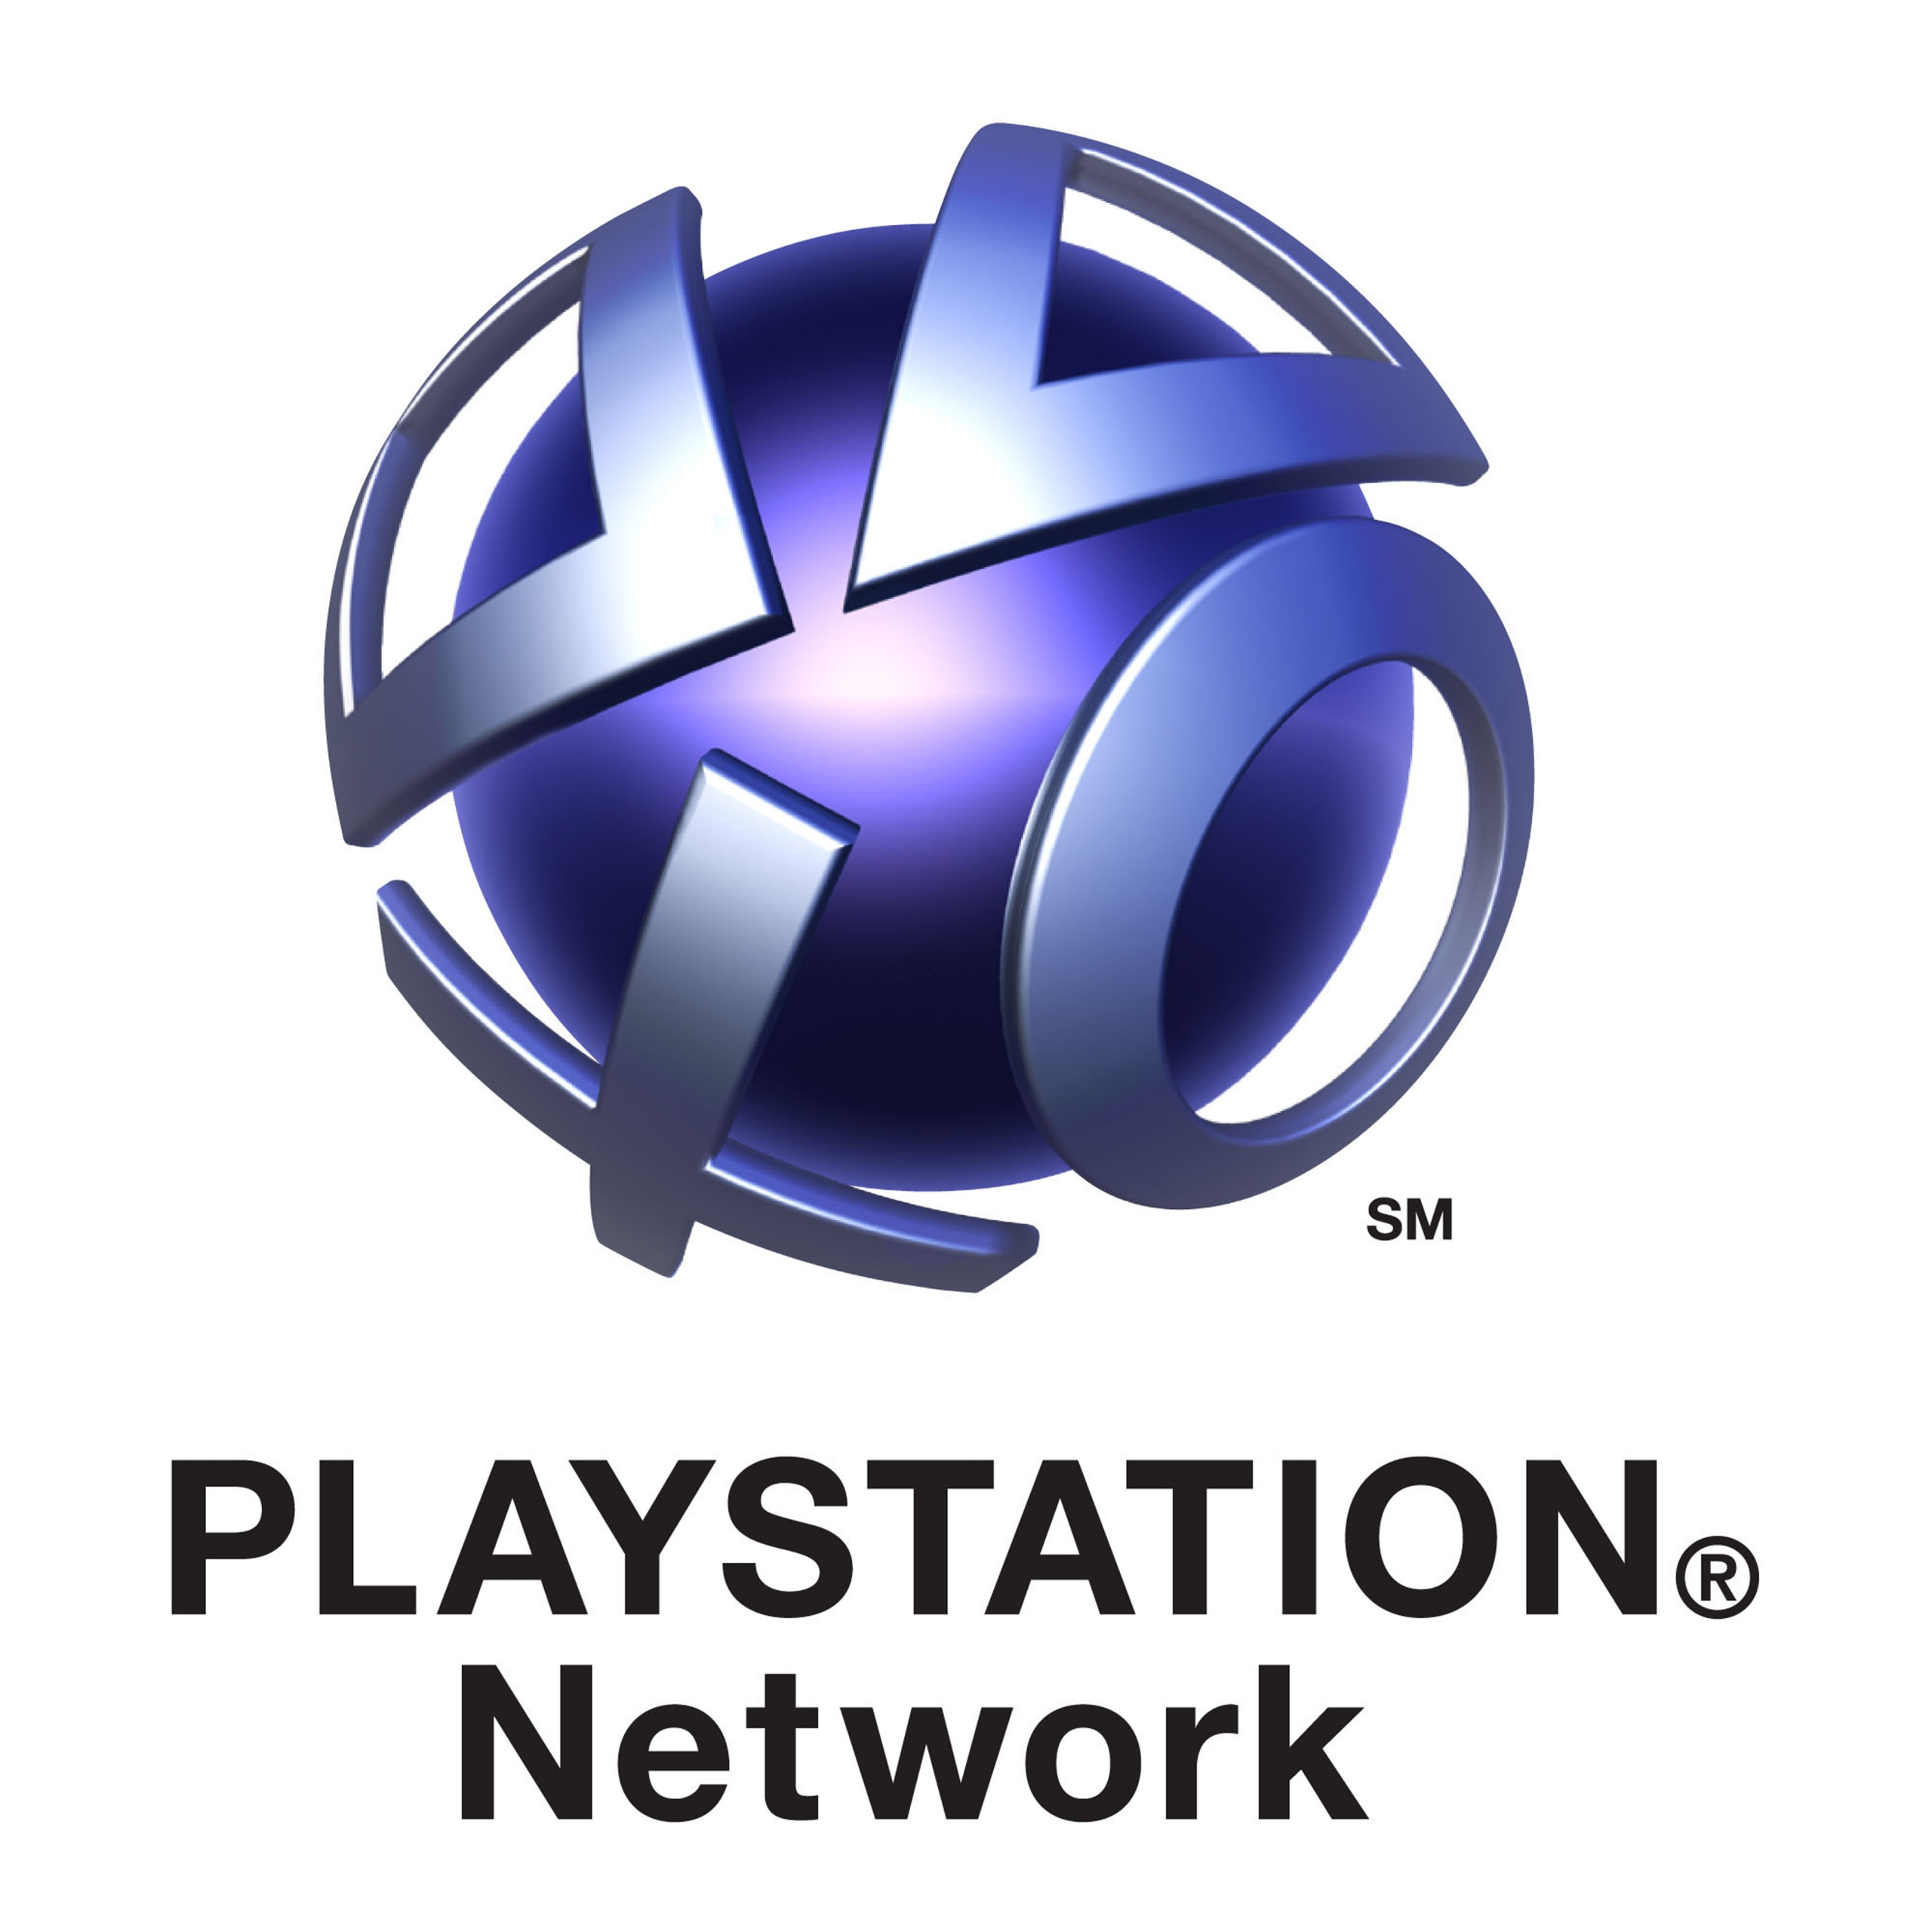 logo psnetwork vert A viking, dog, princess and circle walk into the Best of Playstation Network Volume 1 review